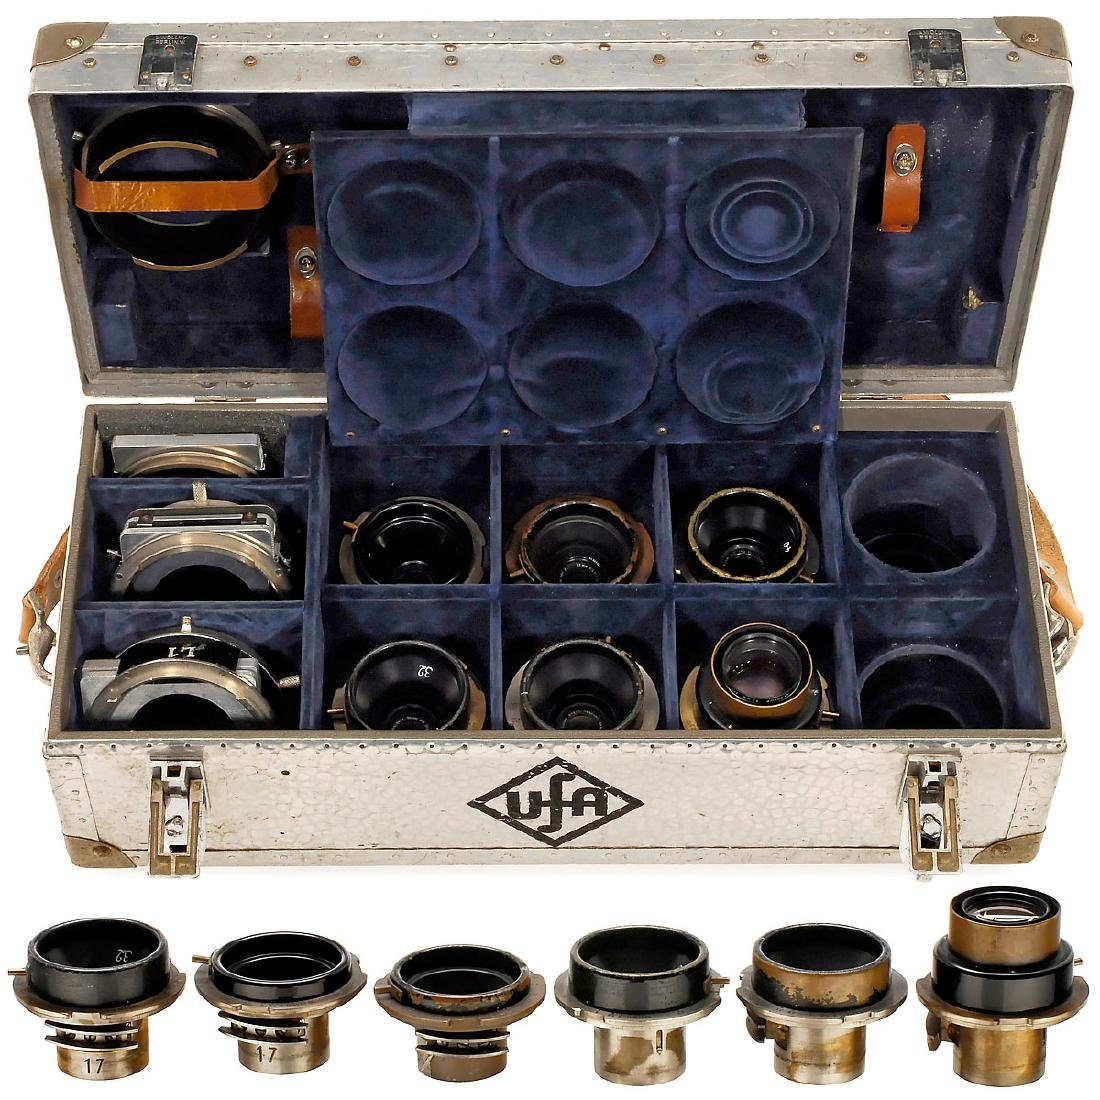 6 Cooke Lenses (Debrie Mount)